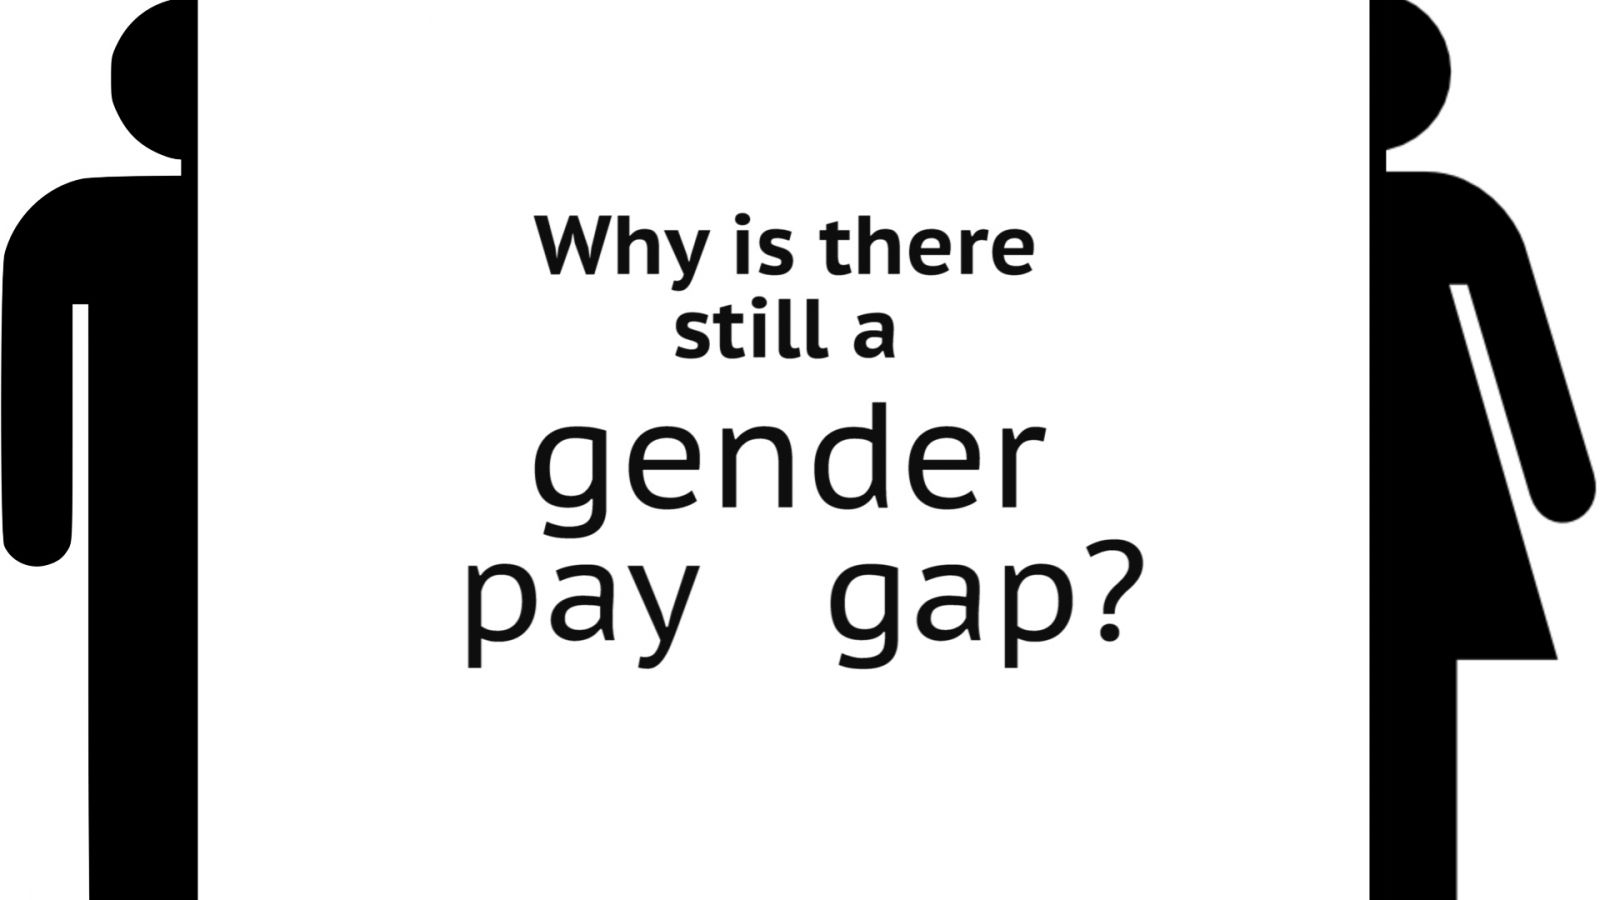 Why is there still a gender pay gap?